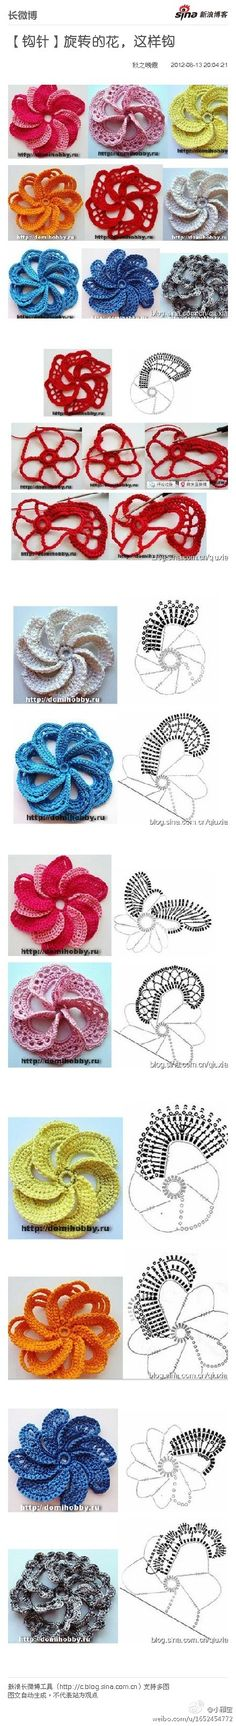 Irish Crochet Flower (chart + tutorial) by tonya. Crochet Diy, Freeform Crochet, Crochet Chart, Love Crochet, Crochet Motif, Irish Crochet, Crochet Stitches, Spiral Crochet, Crochet Diagram